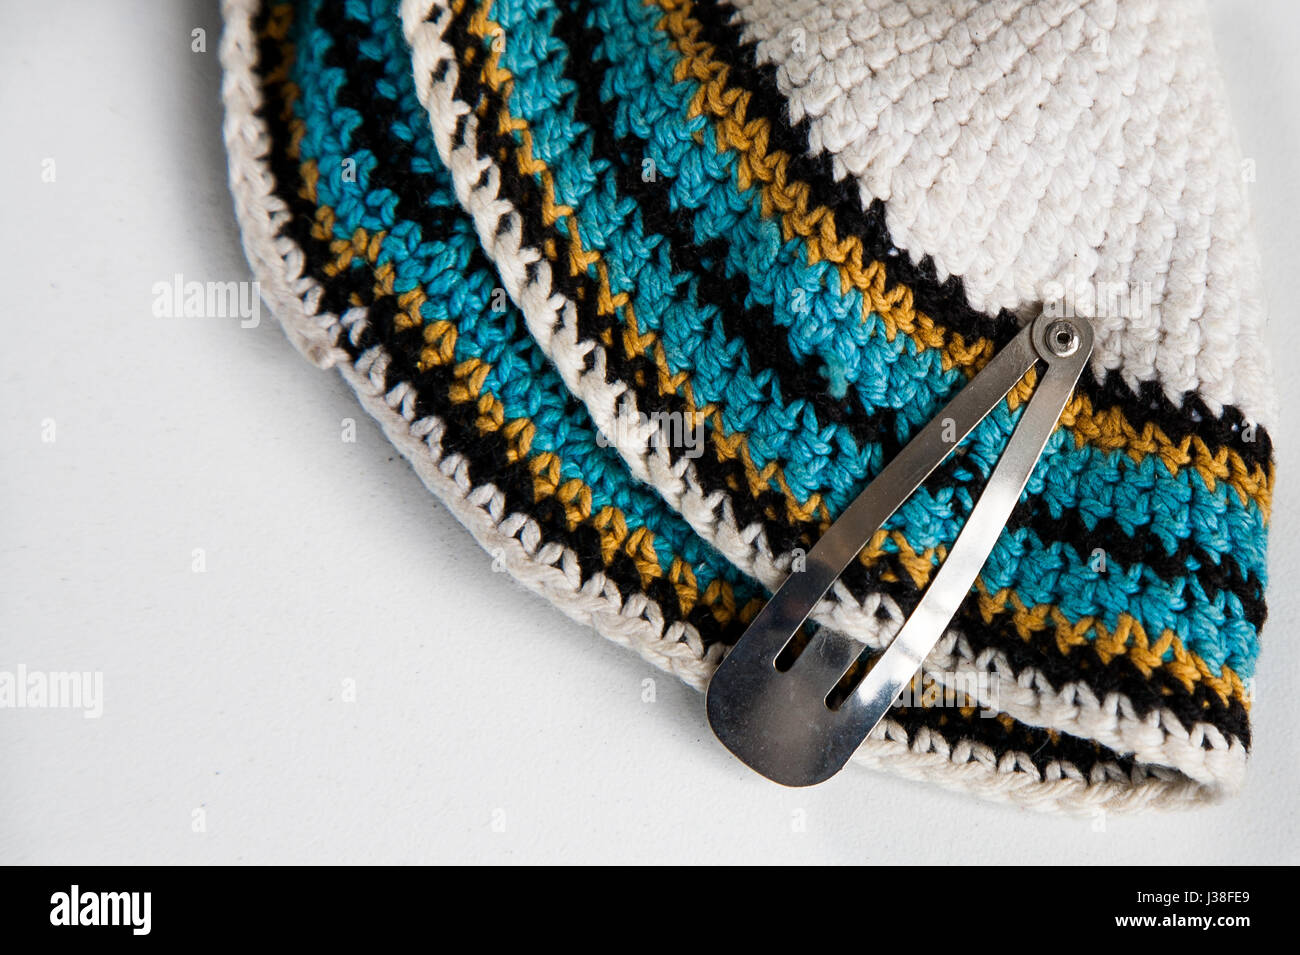 Yarmulke Stock Photo: 139714689 - Alamy